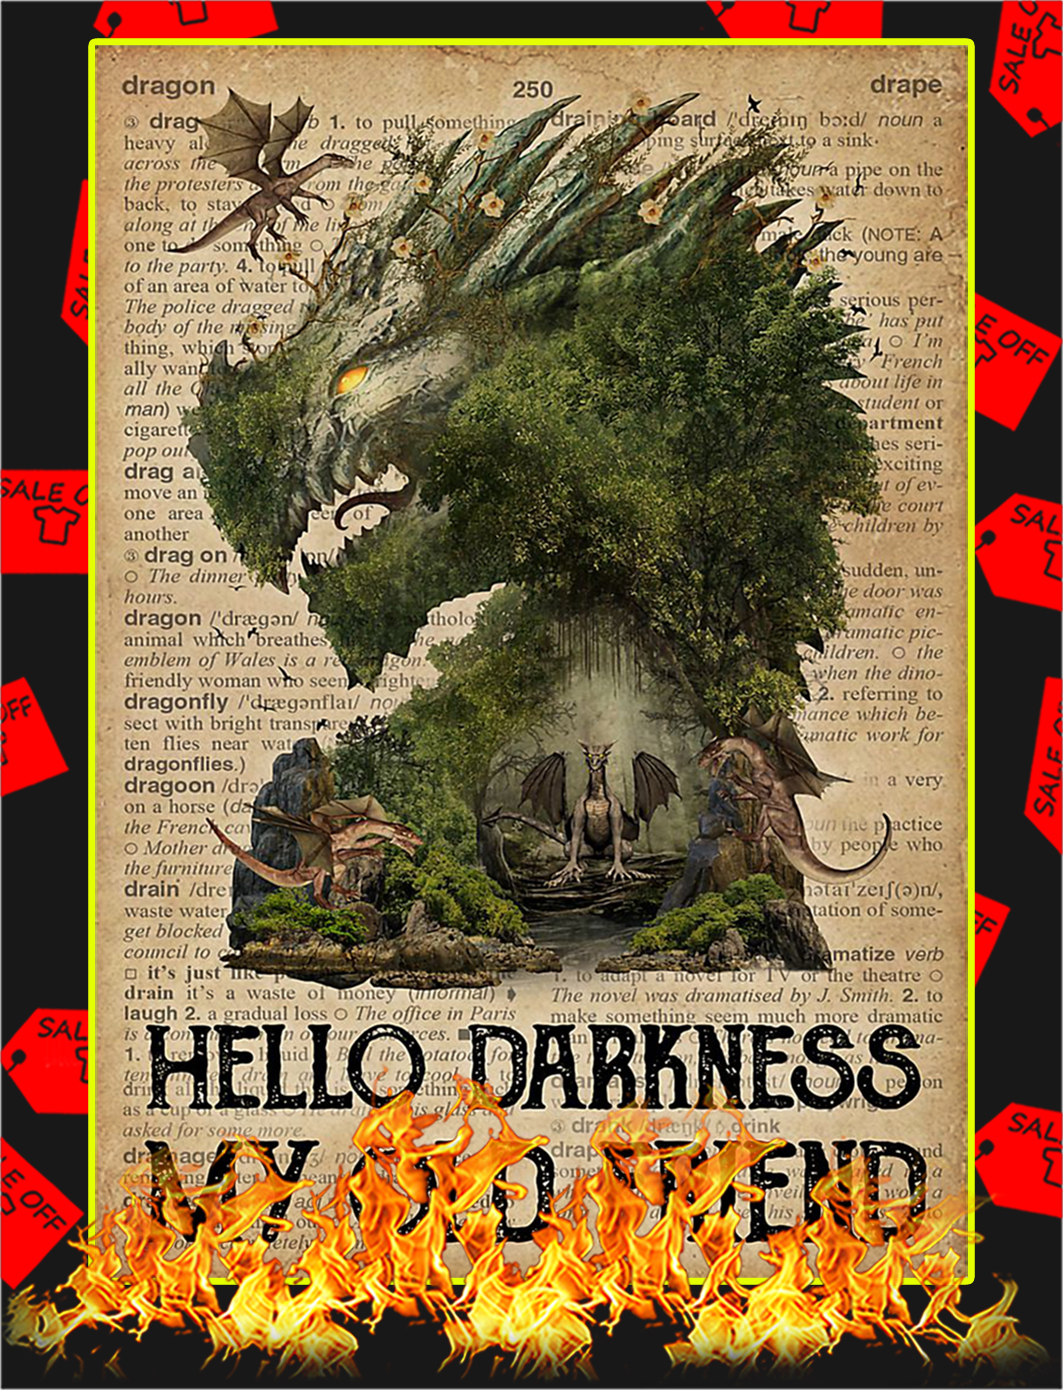 Dragon hello darkness my old friend poster - A2